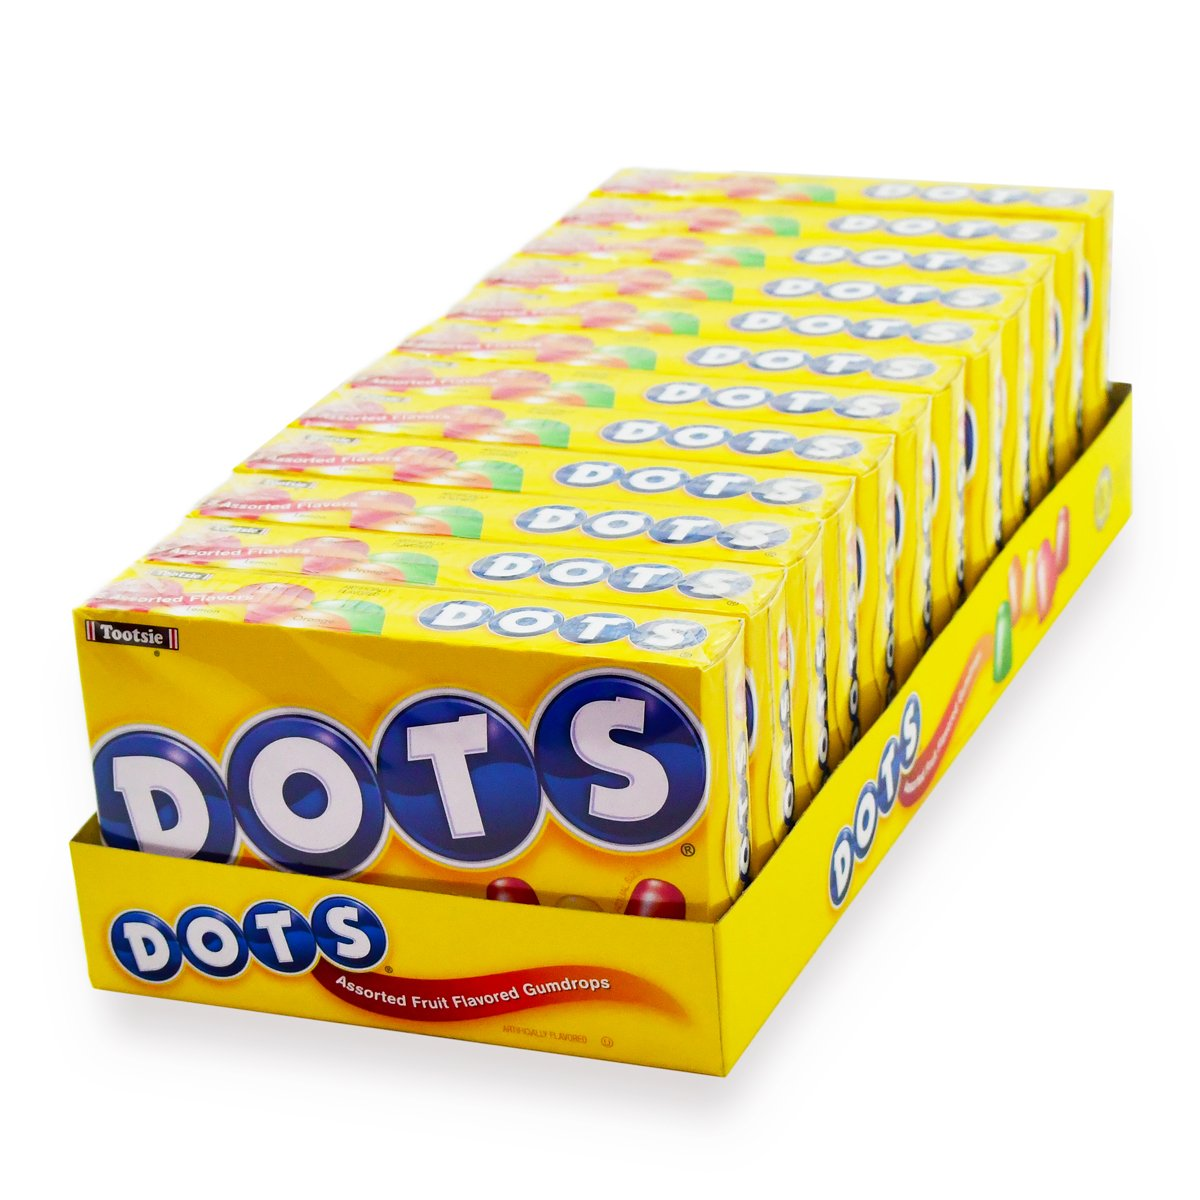 DOTS Assorted Fruit Candy, 6.5 Oz Box, Pack of 12 by Tootsie Roll